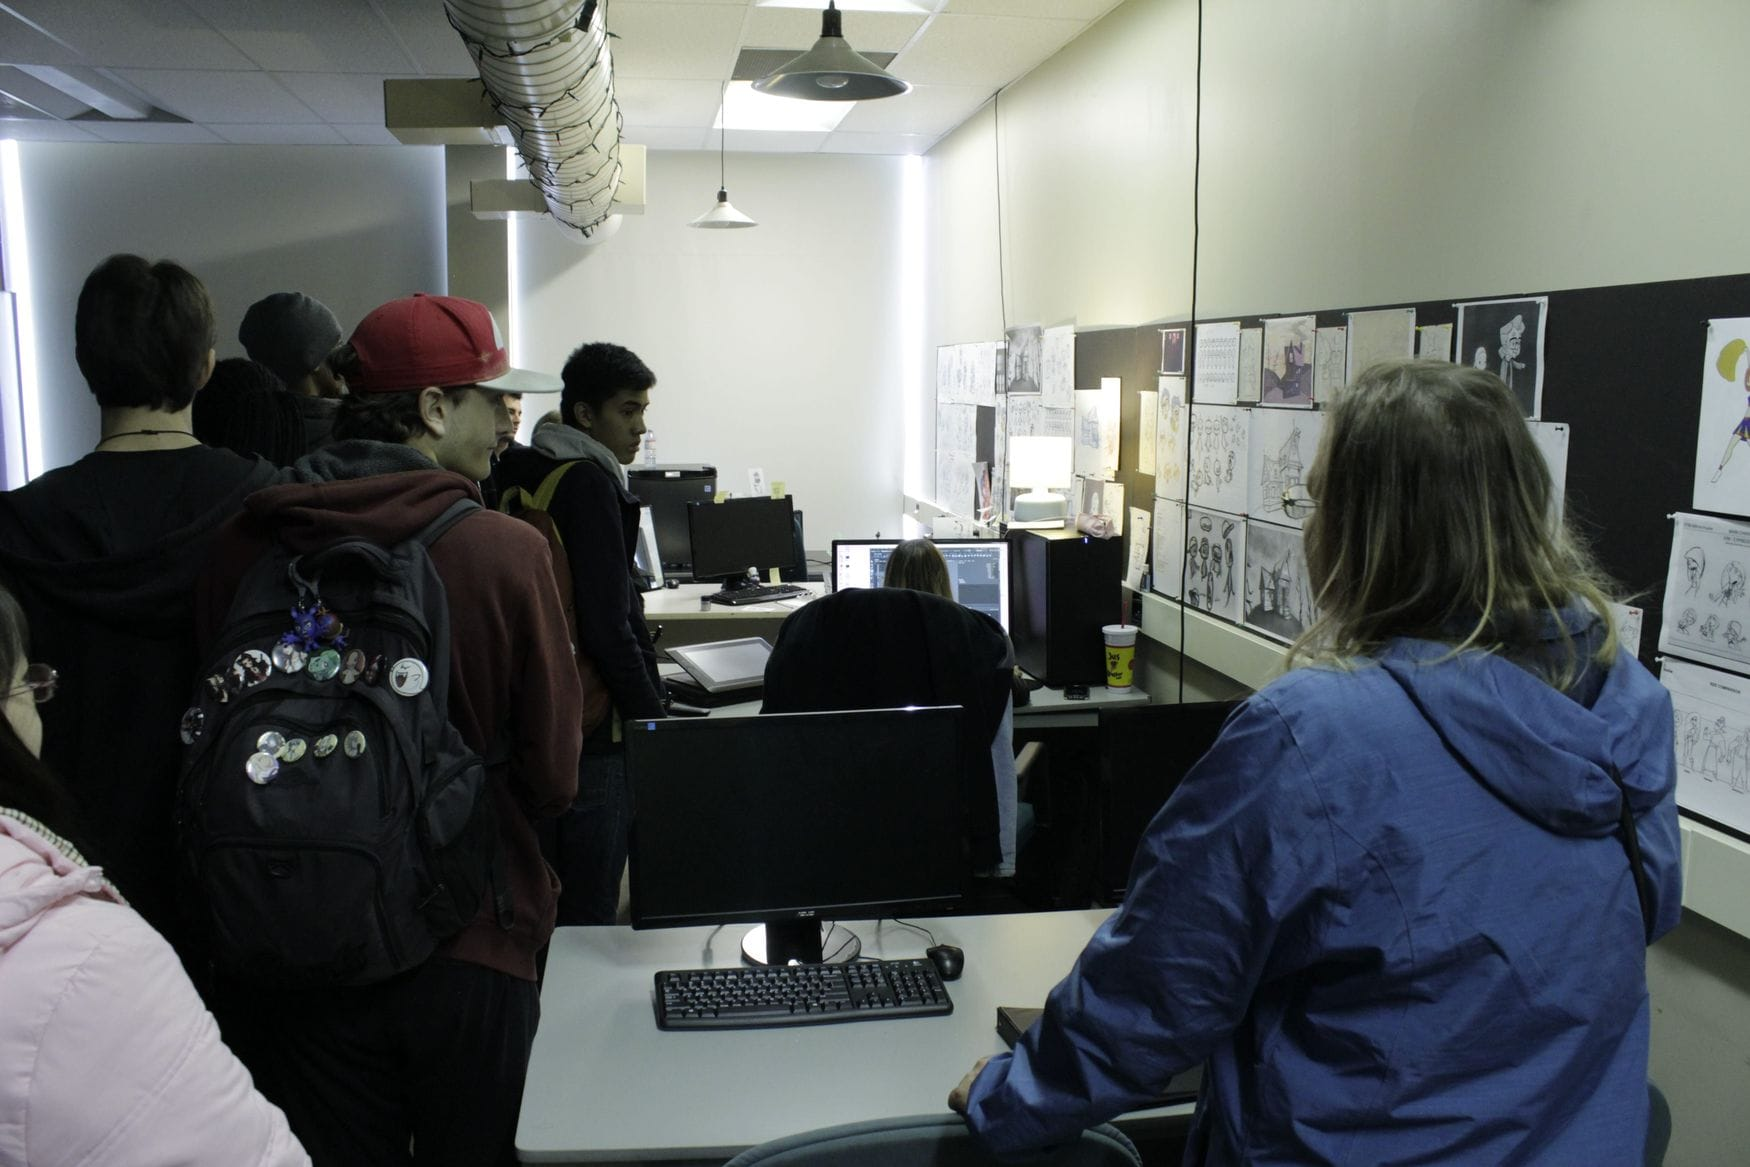 Visitors tour the Year 4 Computer Animation studio during November's Open House